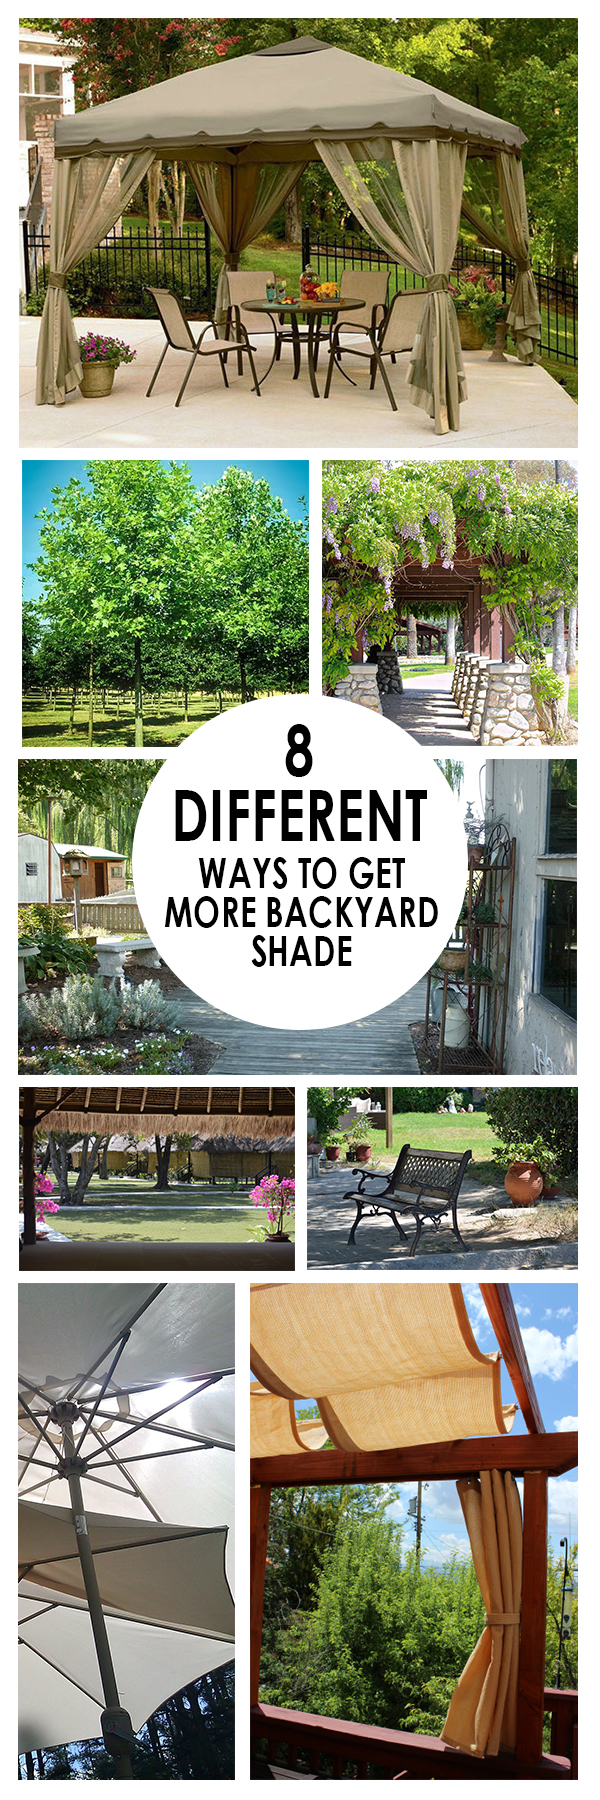 8 Different Ways to Get More Backyard Shade